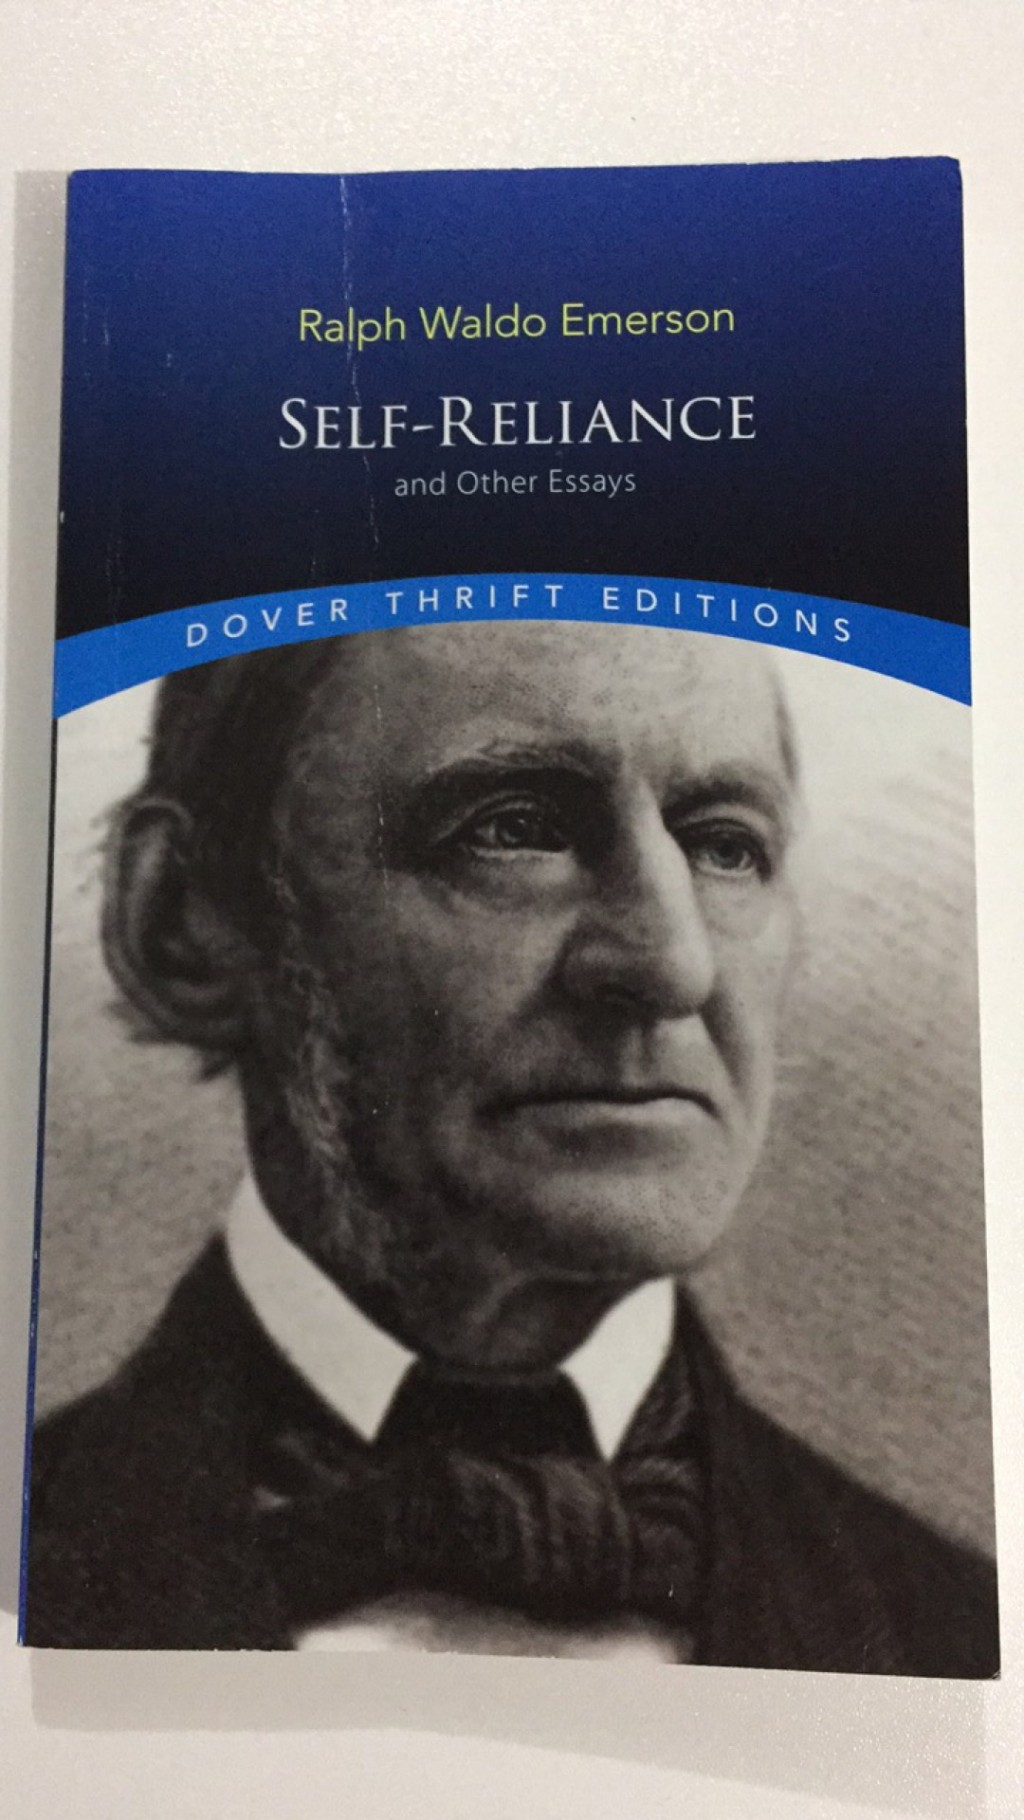 003 Self Reliance And Other Essays Essay Example By Ralph Waldo Emerson Formidable Pdf Ekşi Large